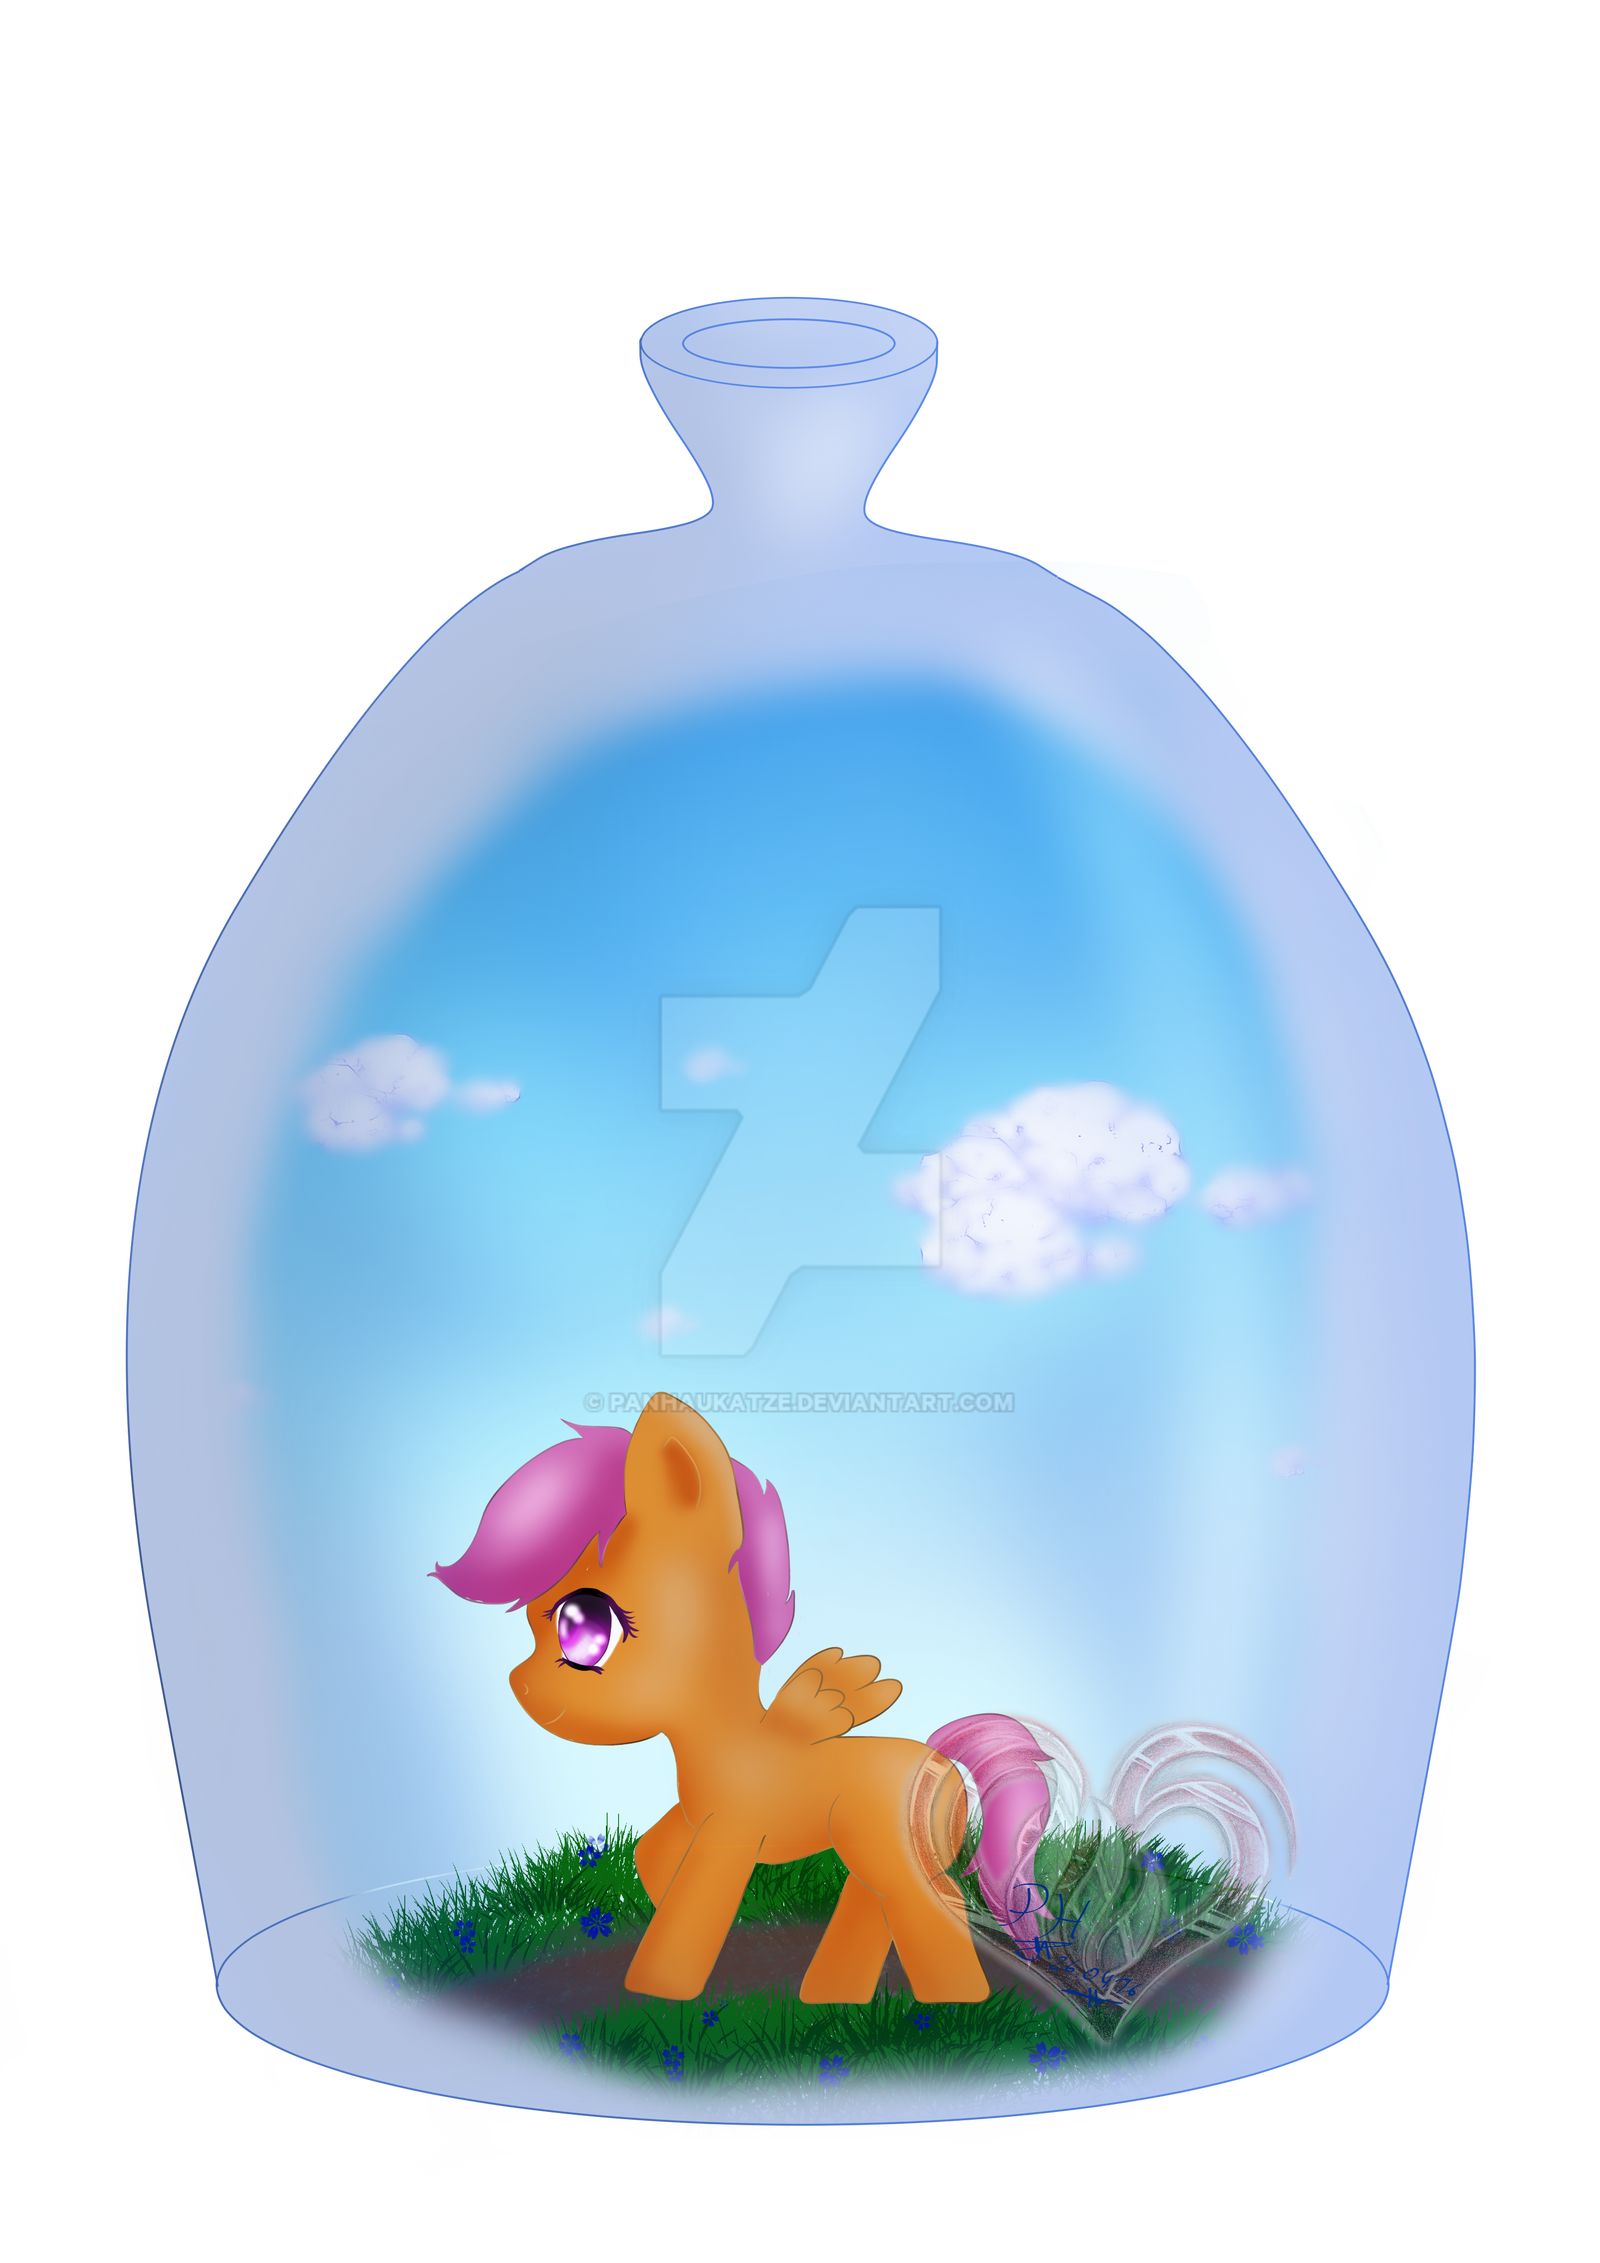 ScooterButtle by PanHaukatze